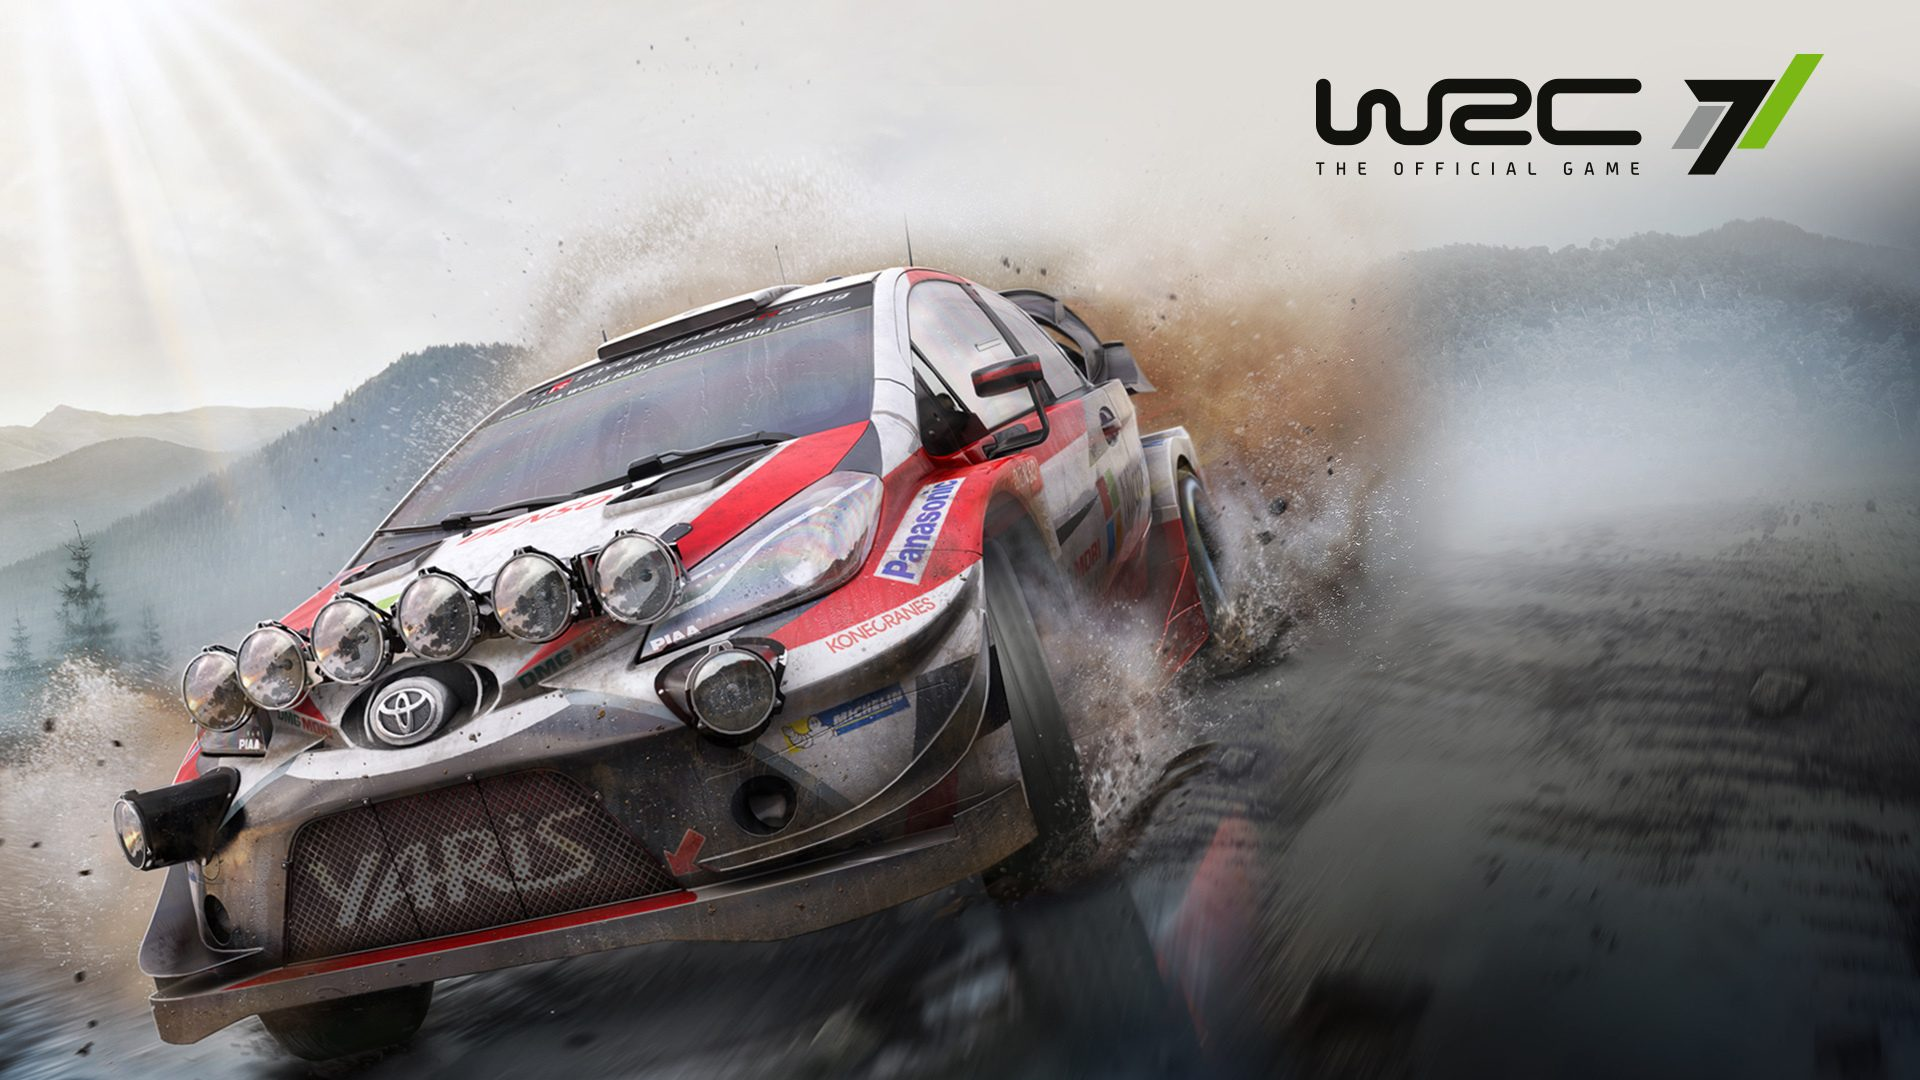 Wrc 7 Playstation 4 Review